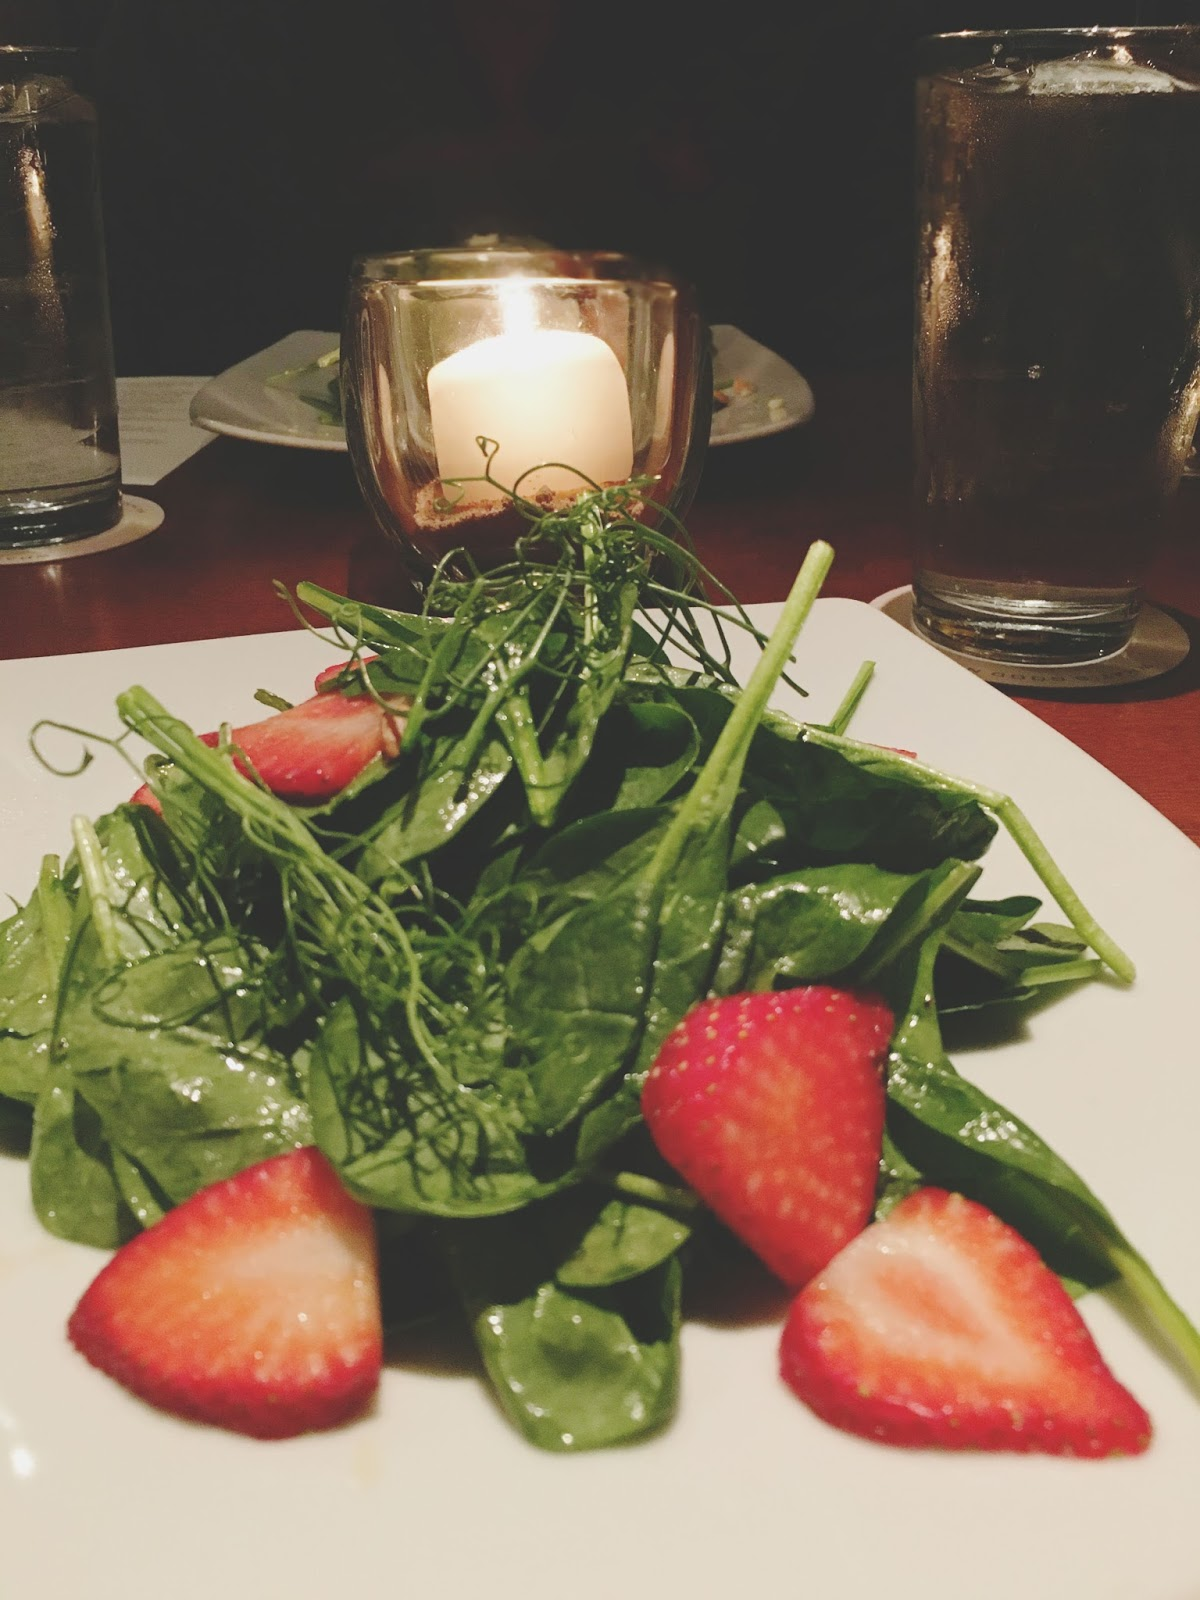 spinach salad at Seasons 52, a restaurant in Houston, Texas